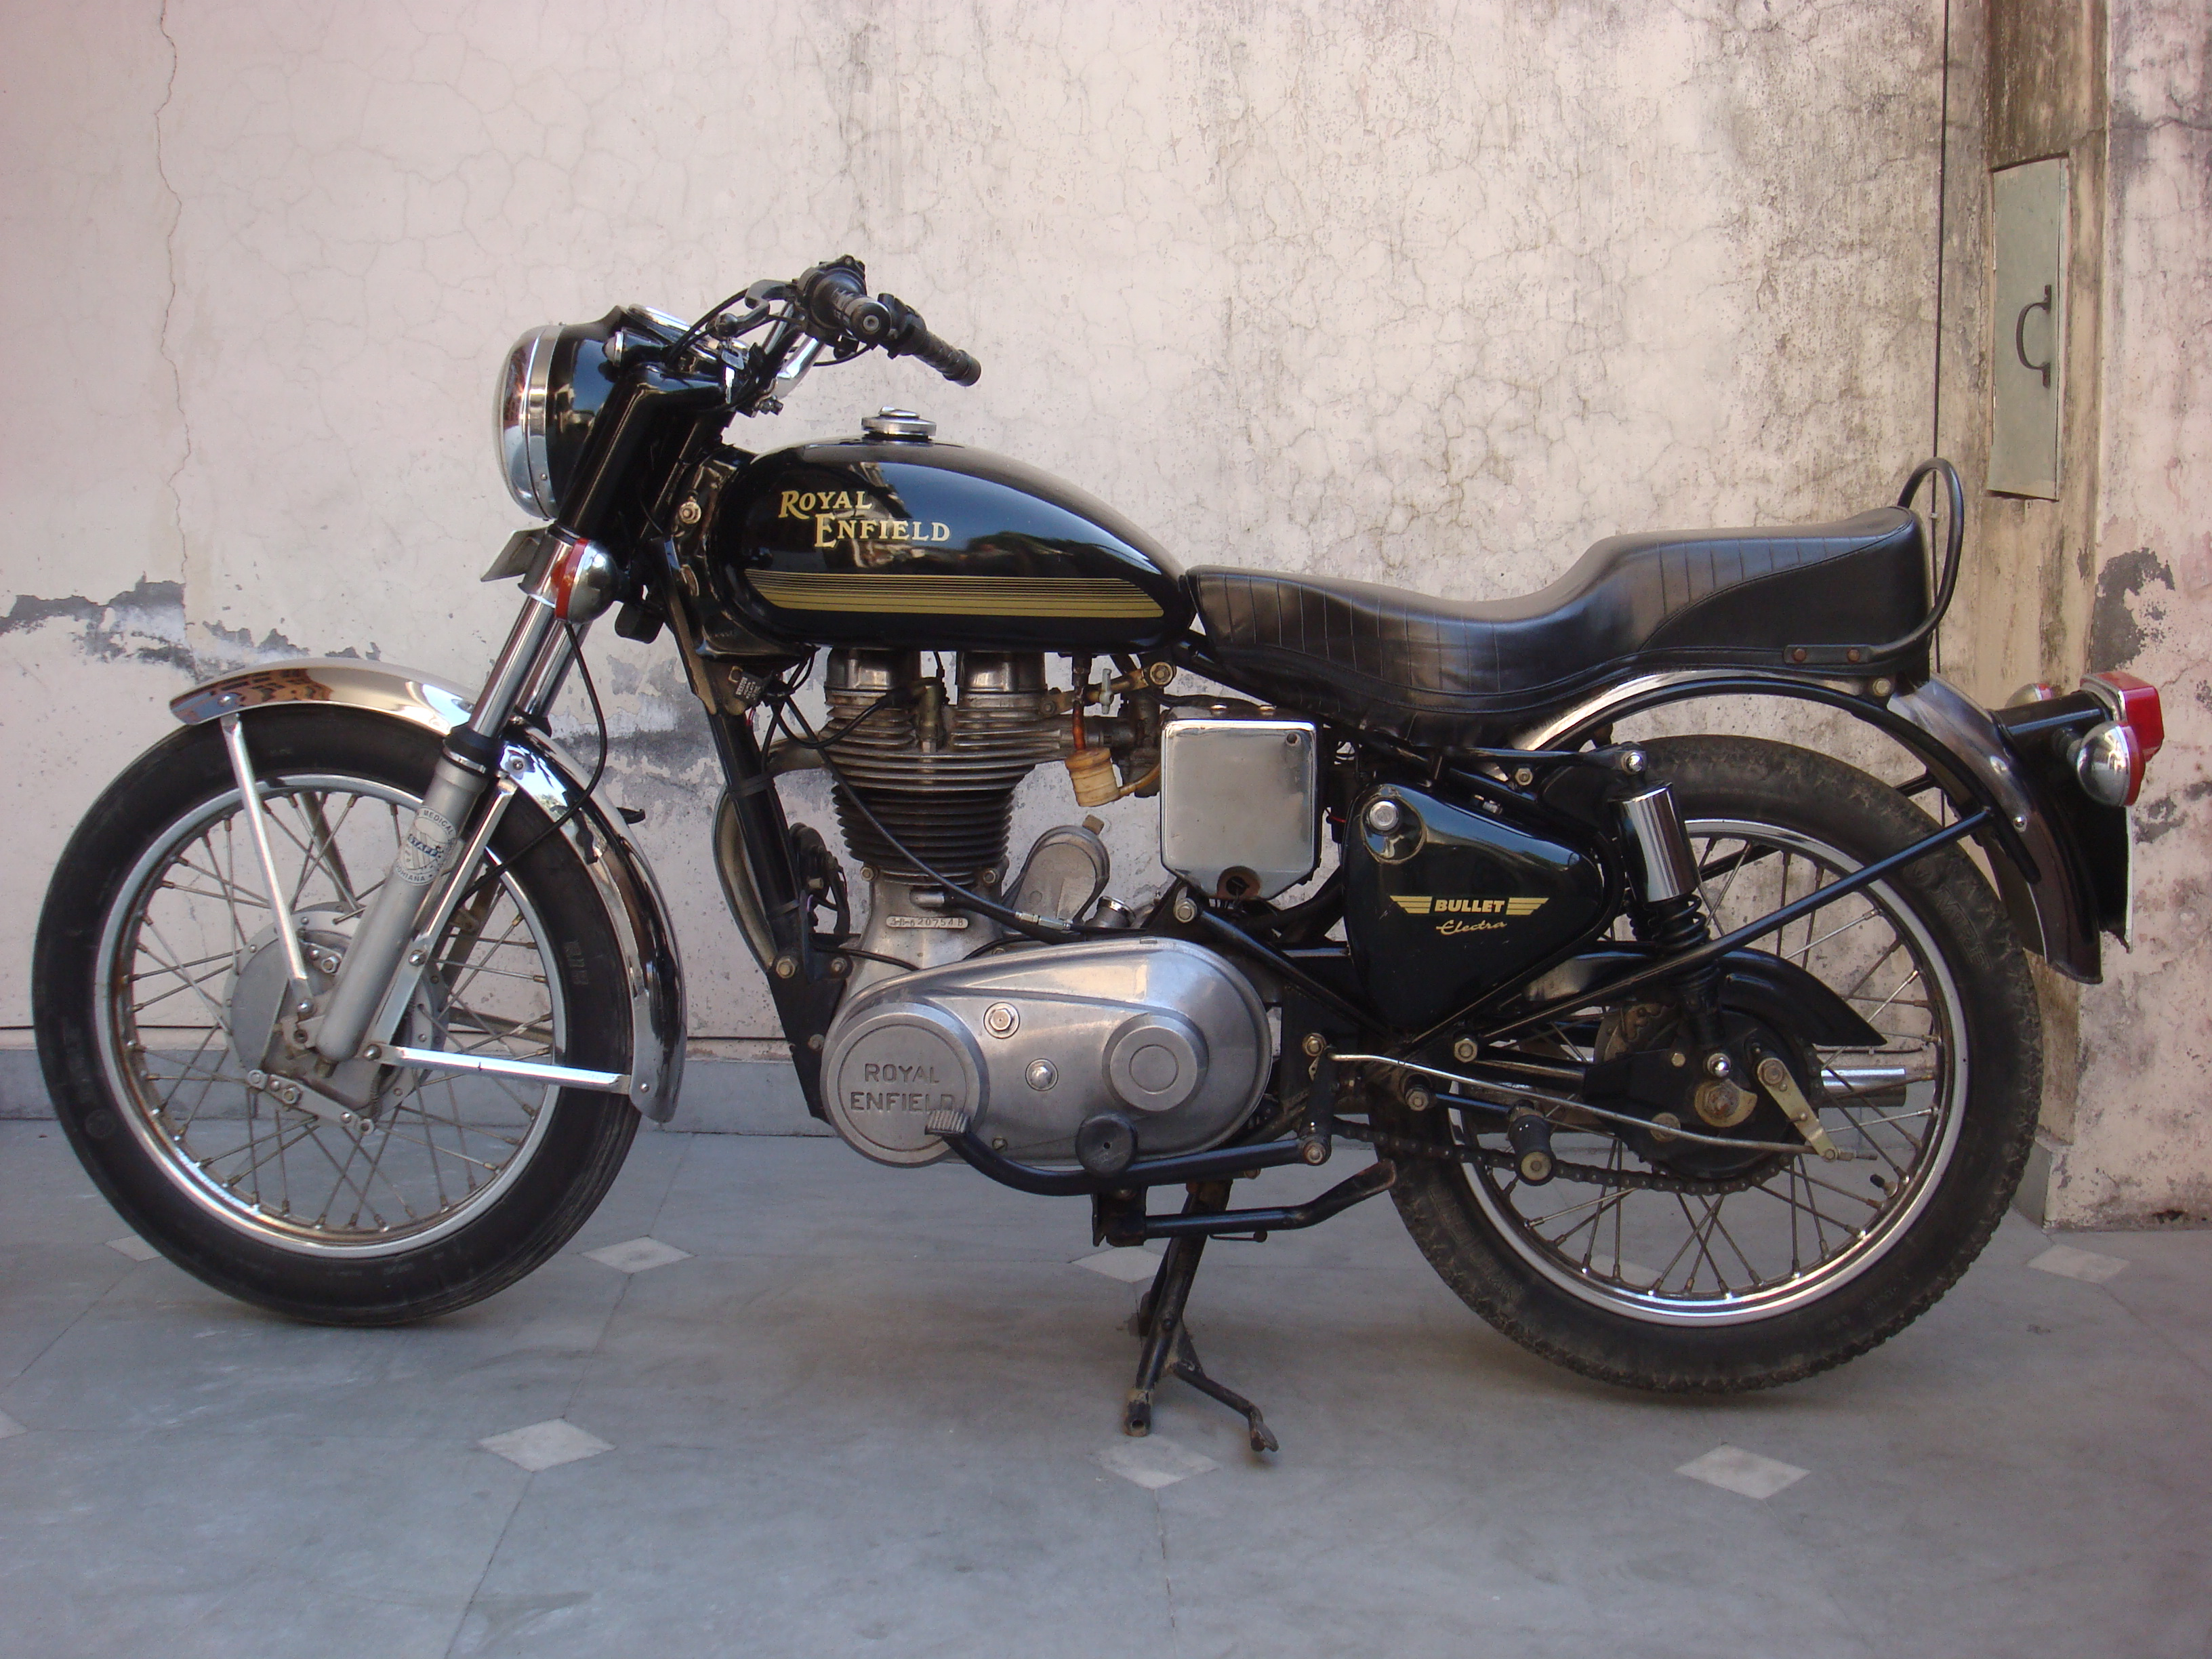 Royal Enfield Bullet 500 Army 2003 images #123832